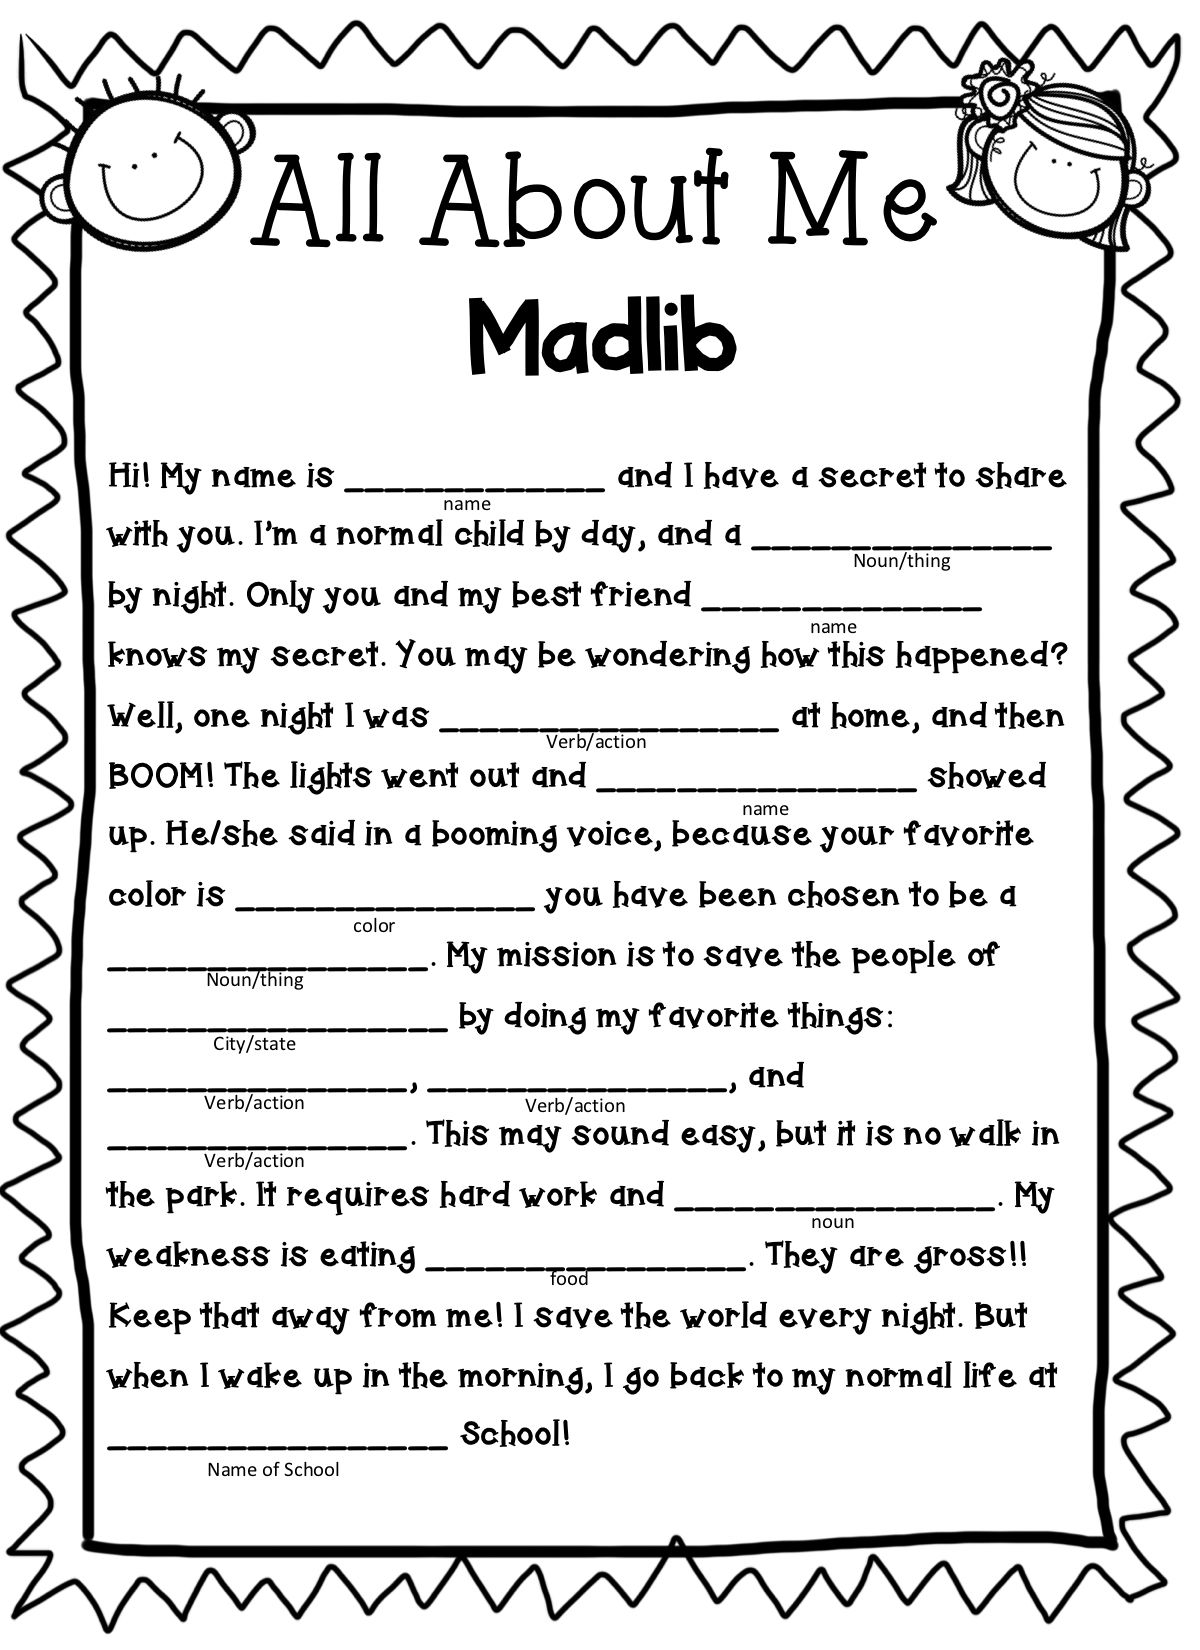 All About Me Madlib